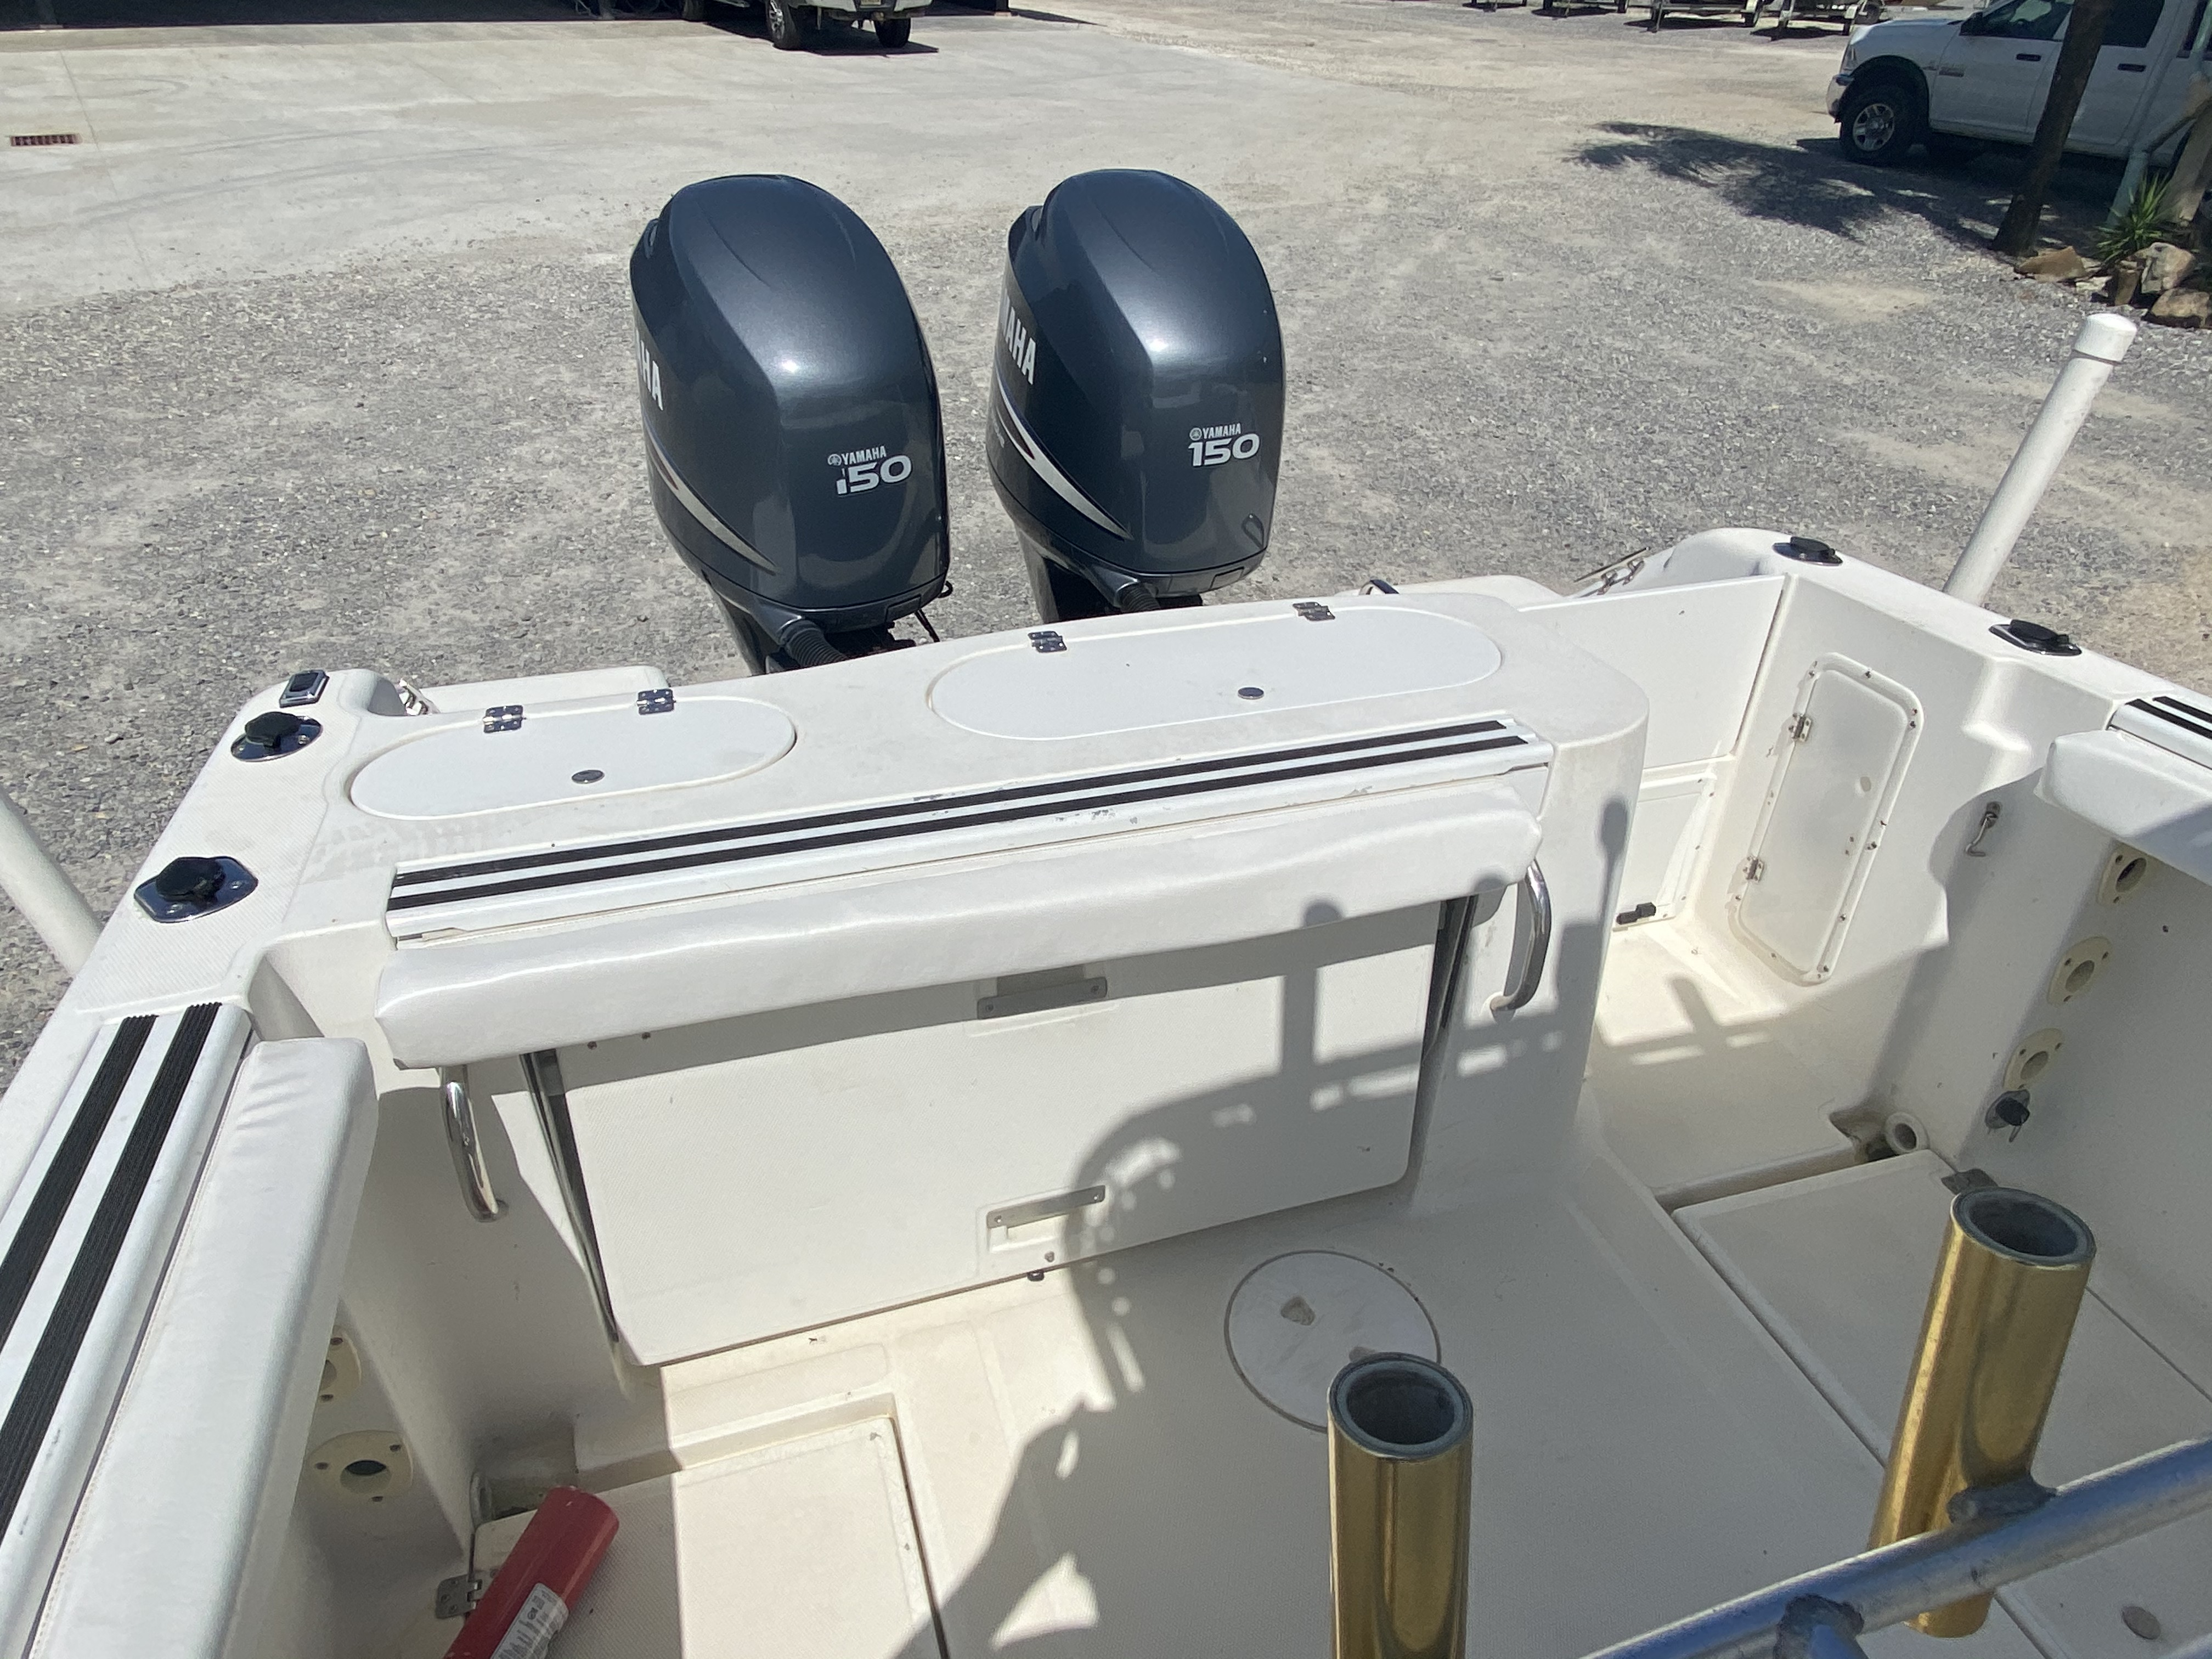 2002 Wellcraft boat for sale, model of the boat is 230 & Image # 5 of 14